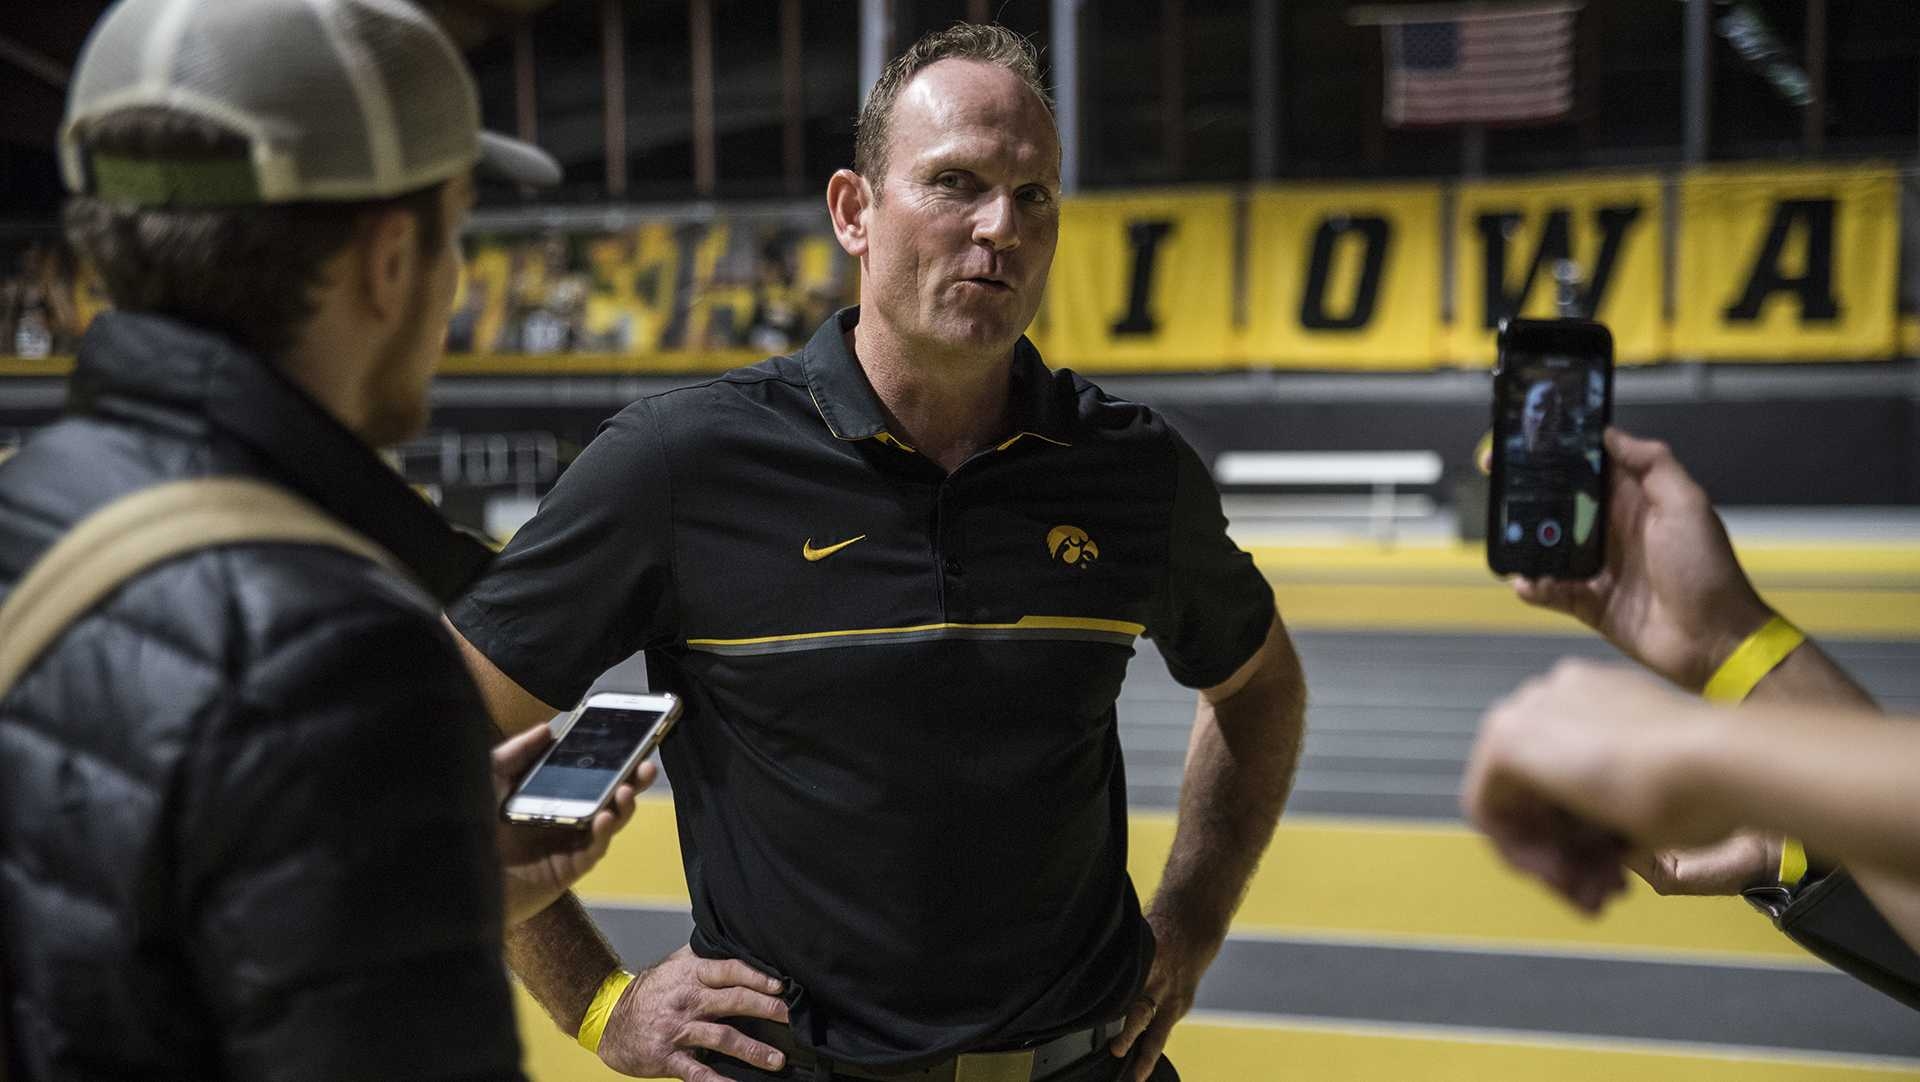 Iowa Director of Track and Field Joey Woody interviews with reporters after the annual Black and Gold Intrasquad Meet at the UI Recreation Building on Saturday, Dec. 9, 2017. The Hawkeyes will host the next meet on January 13. (Ben Allan Smith/The Daily Iowan)